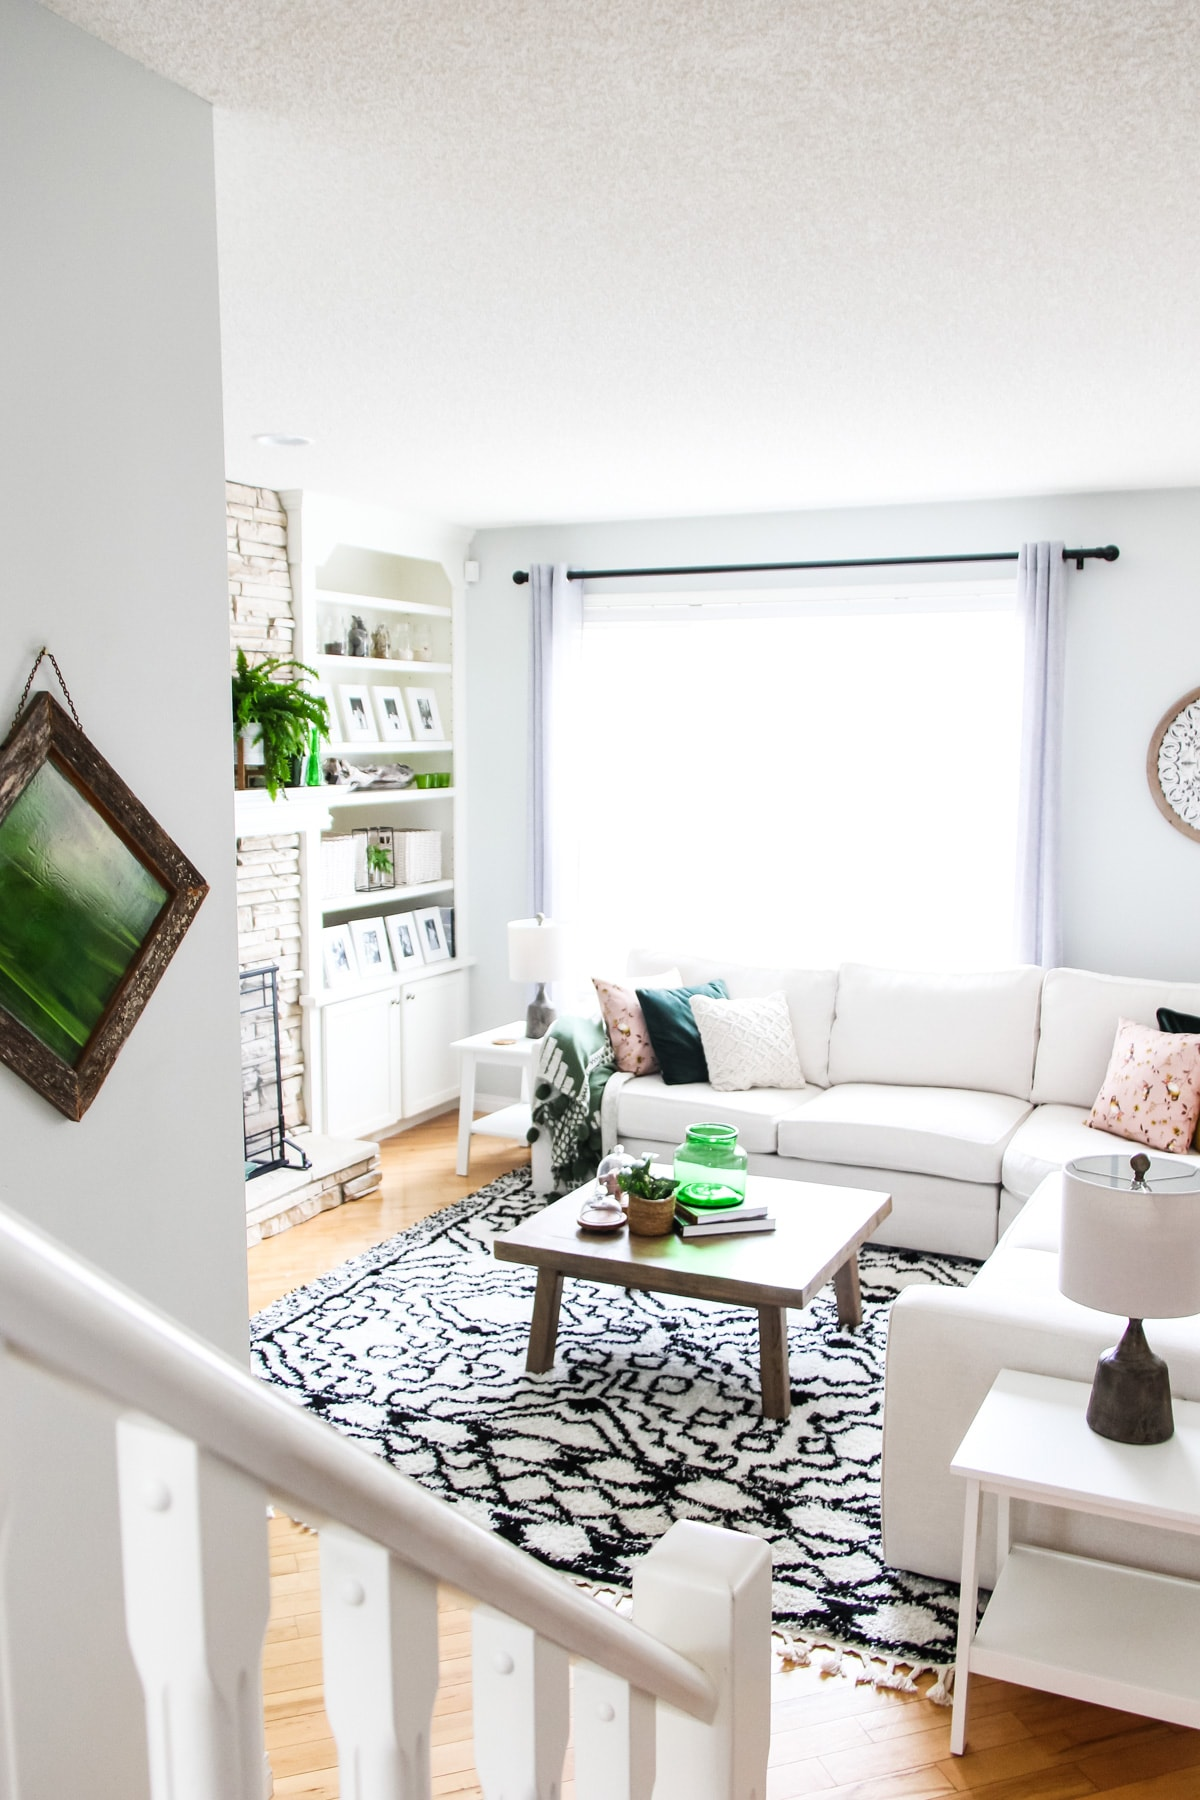 a view from a set of stairs into a bright living room with a cream sectional couch, a wooden coffee table holding a green vase, books and a plant, a black and white rug